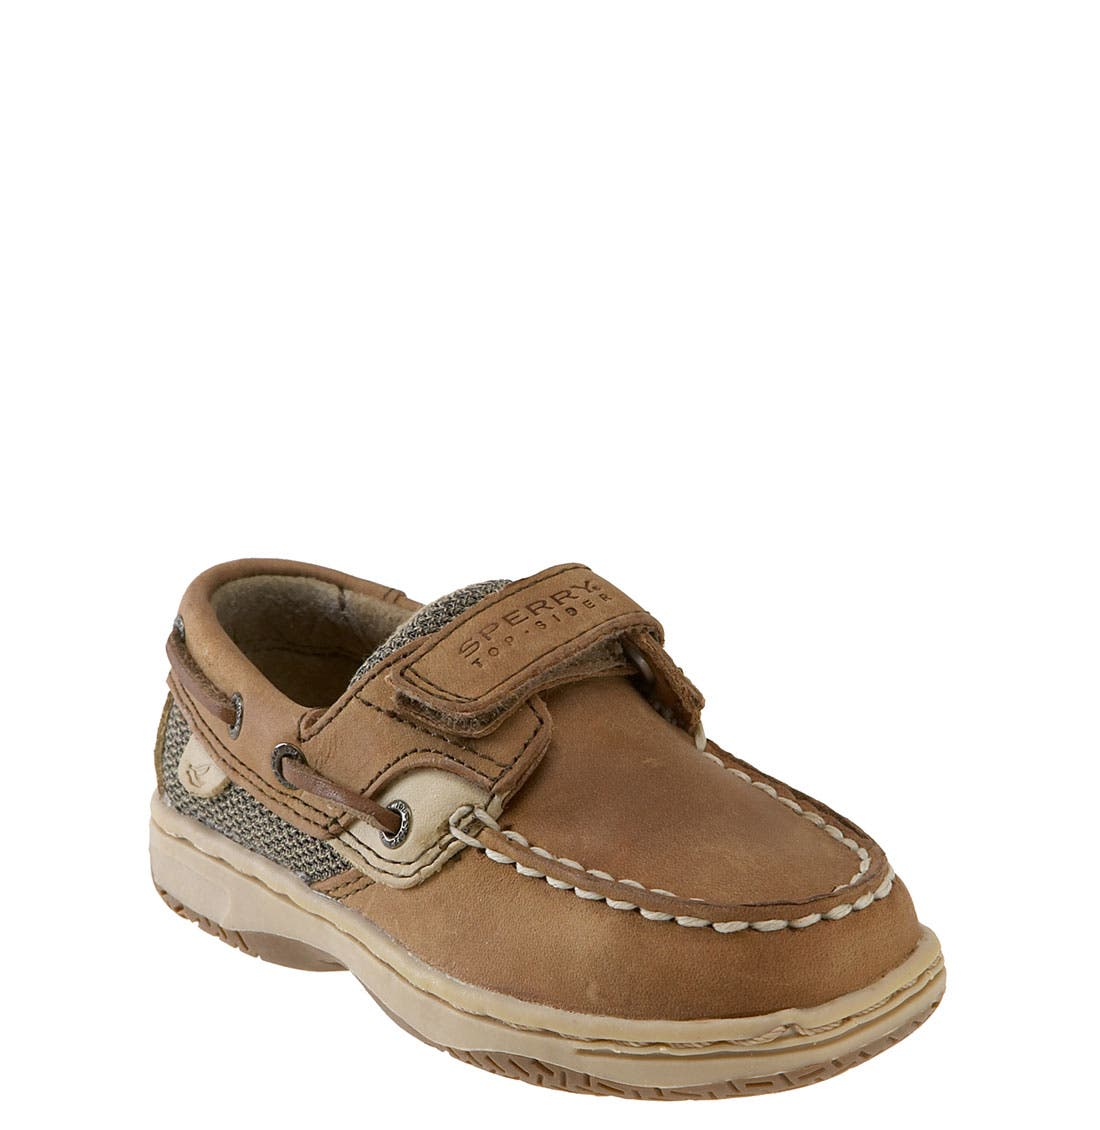 SPERRY KIDS 'Bluefish' Oxford